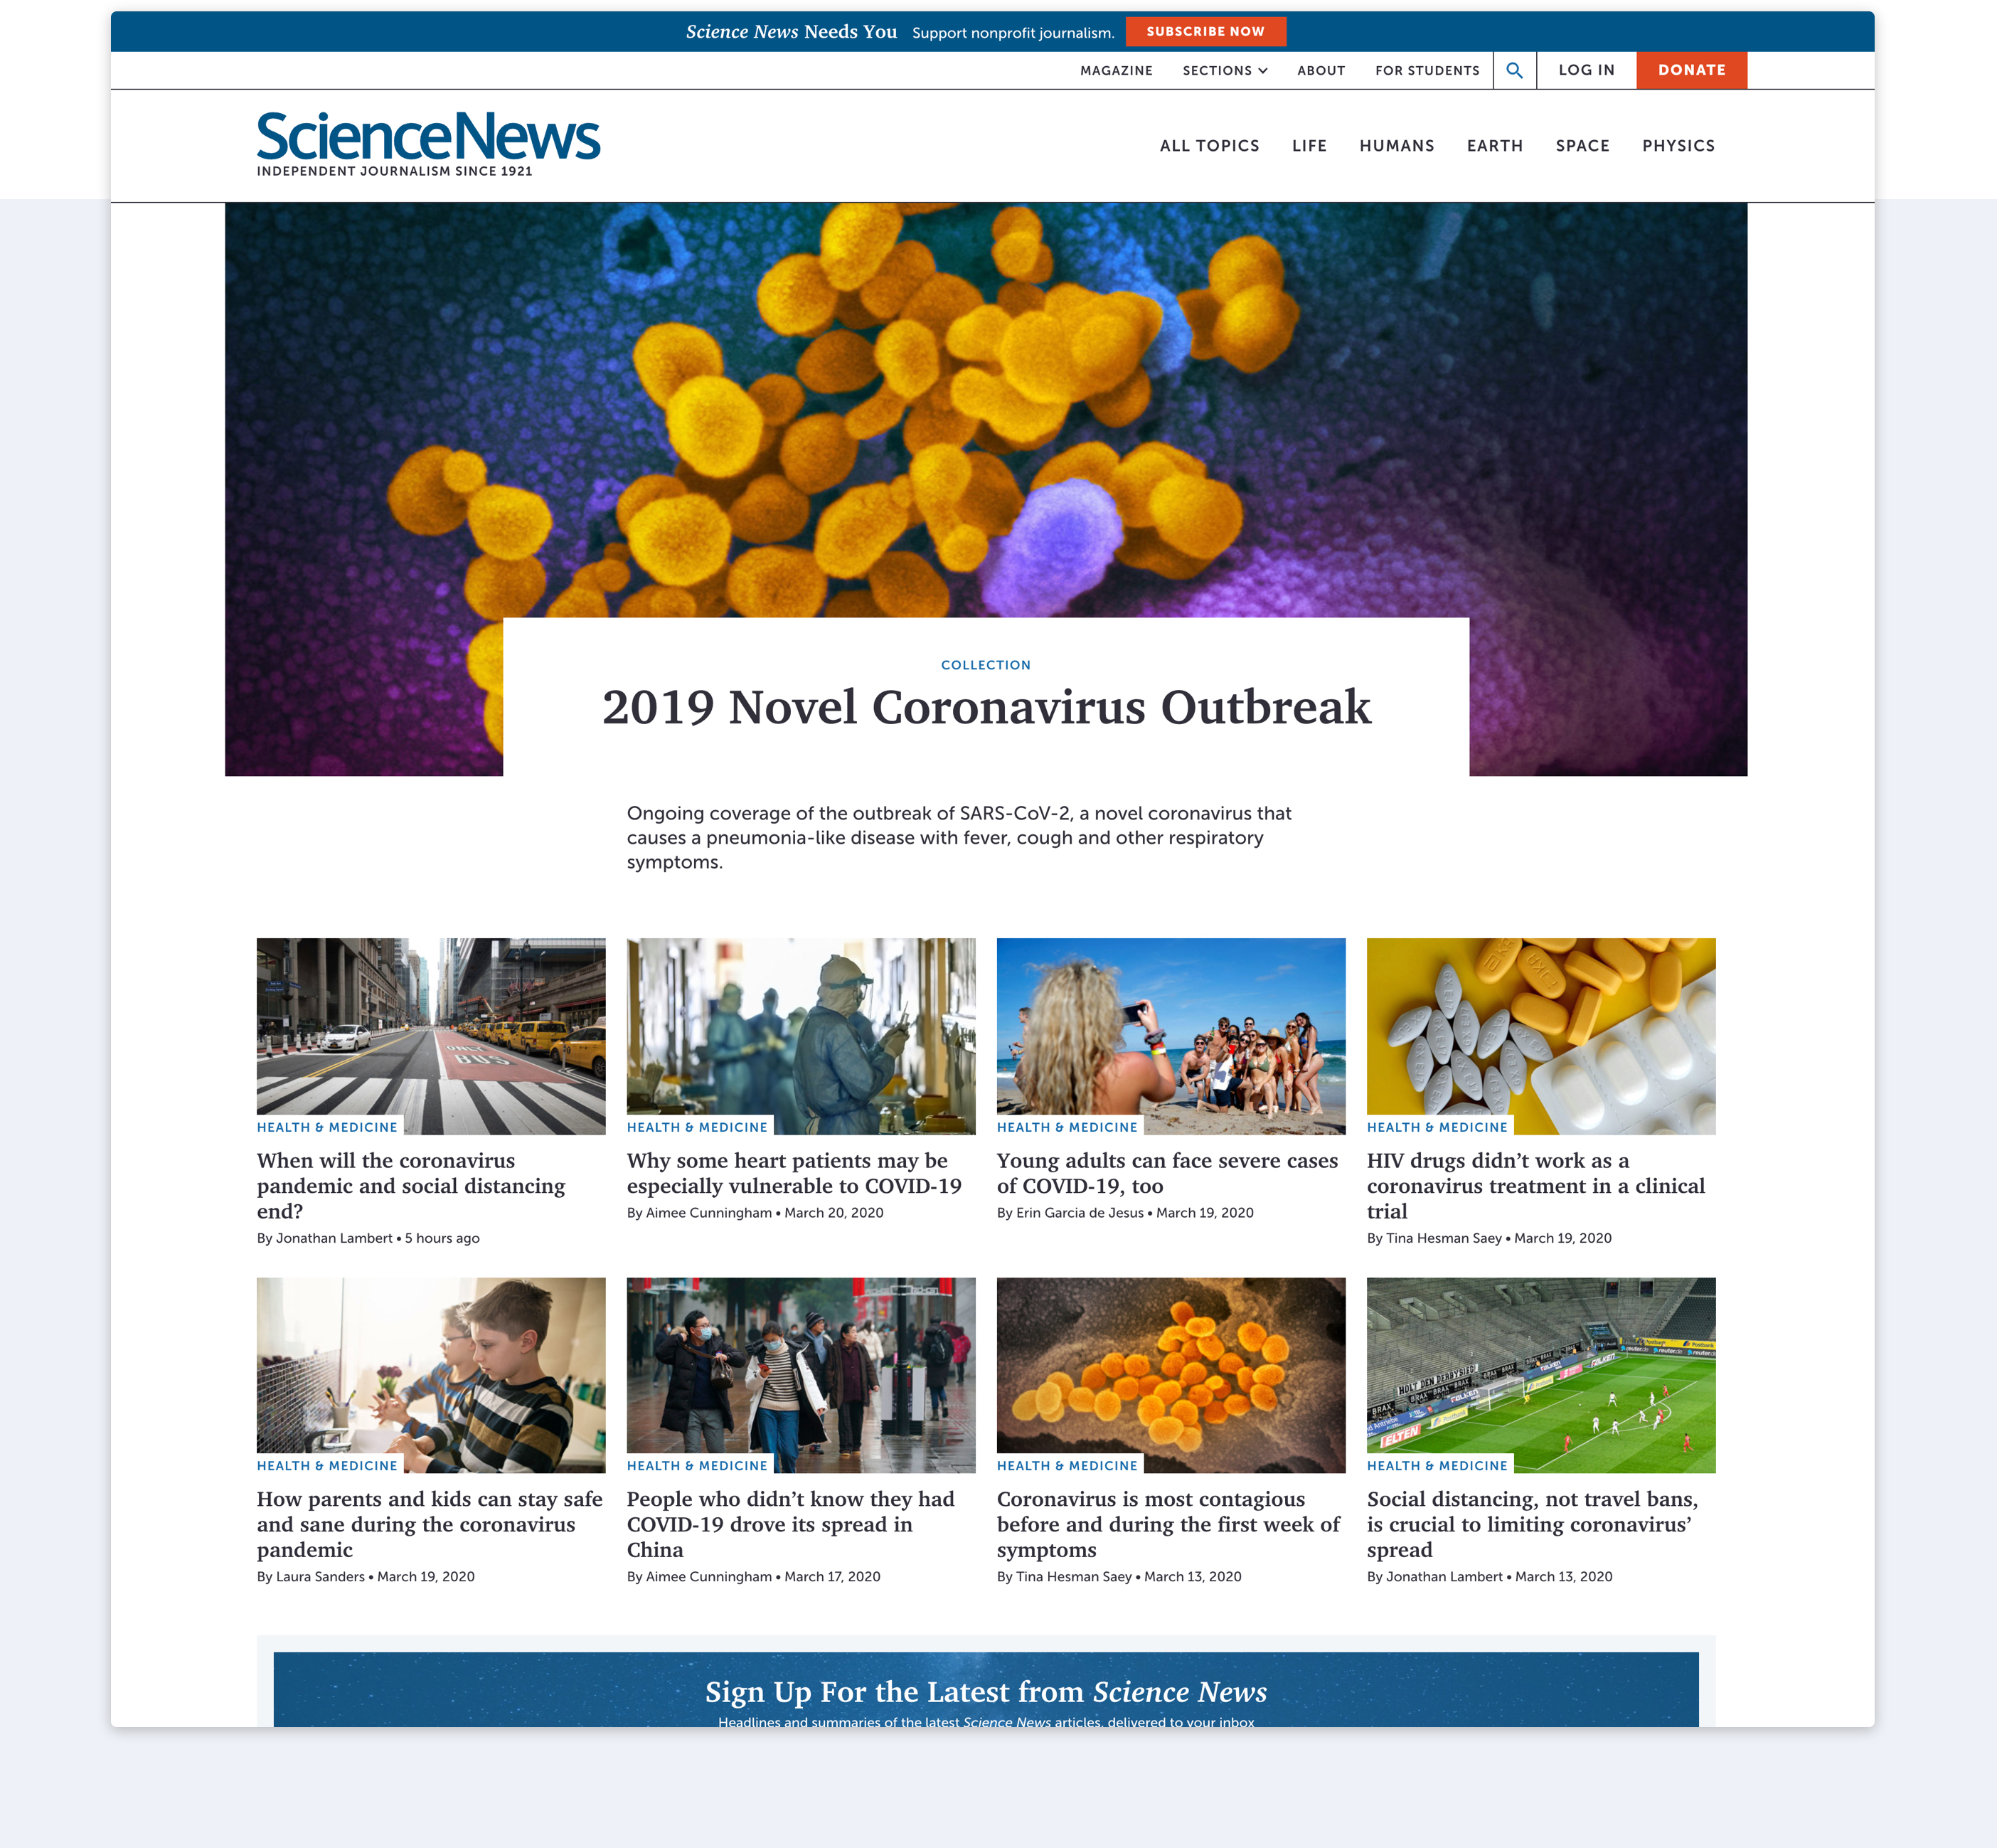 The main page of Science News with navigation, featured article, and additional content